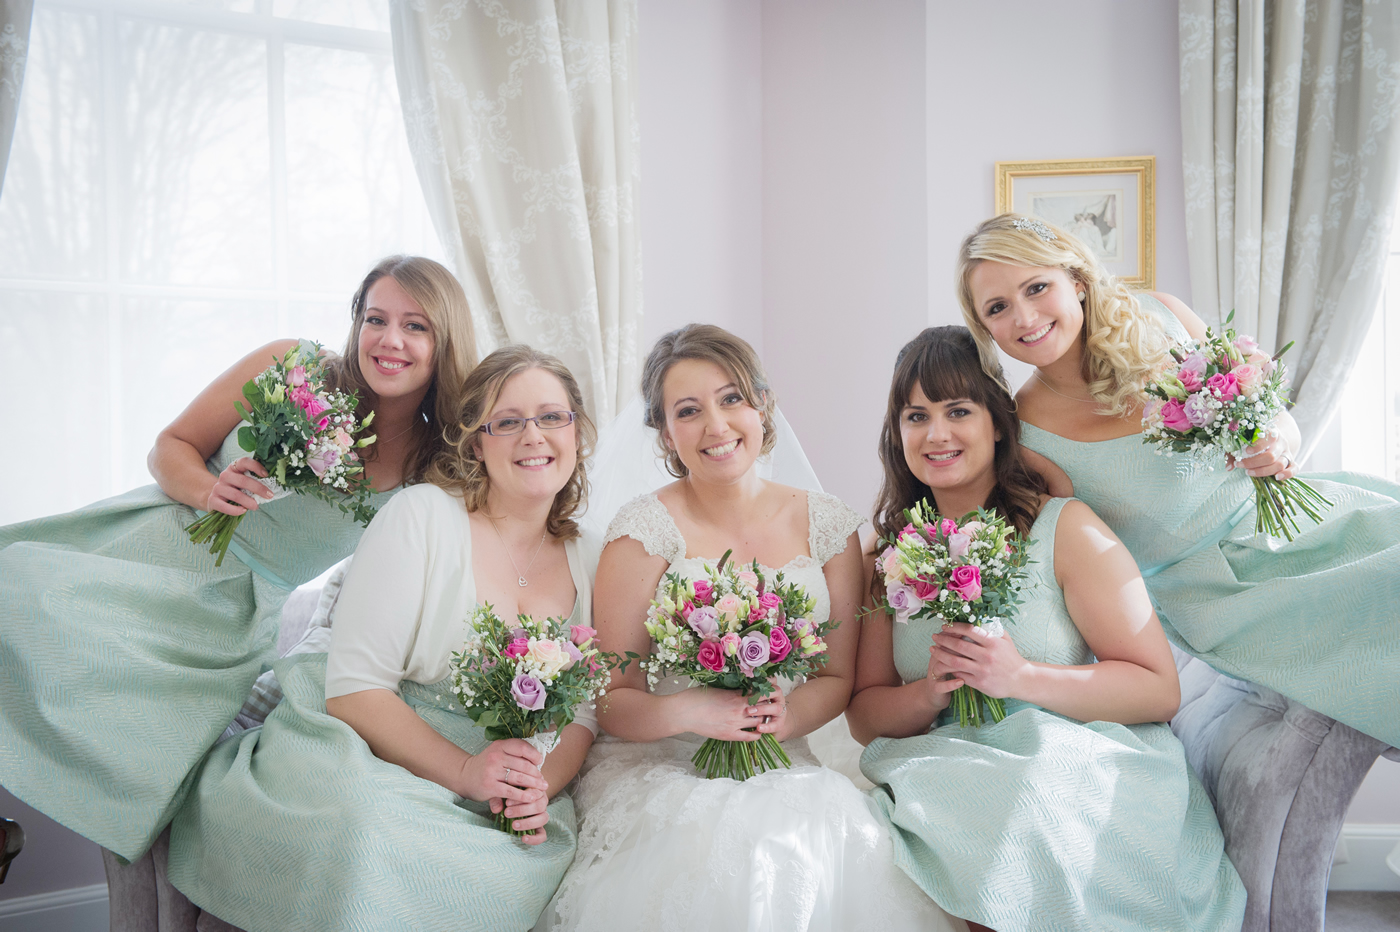 Wedding at Burnham Beeches, Buckinghamshire - Bride & Bridesmaids - Bridal Hair & Makeup